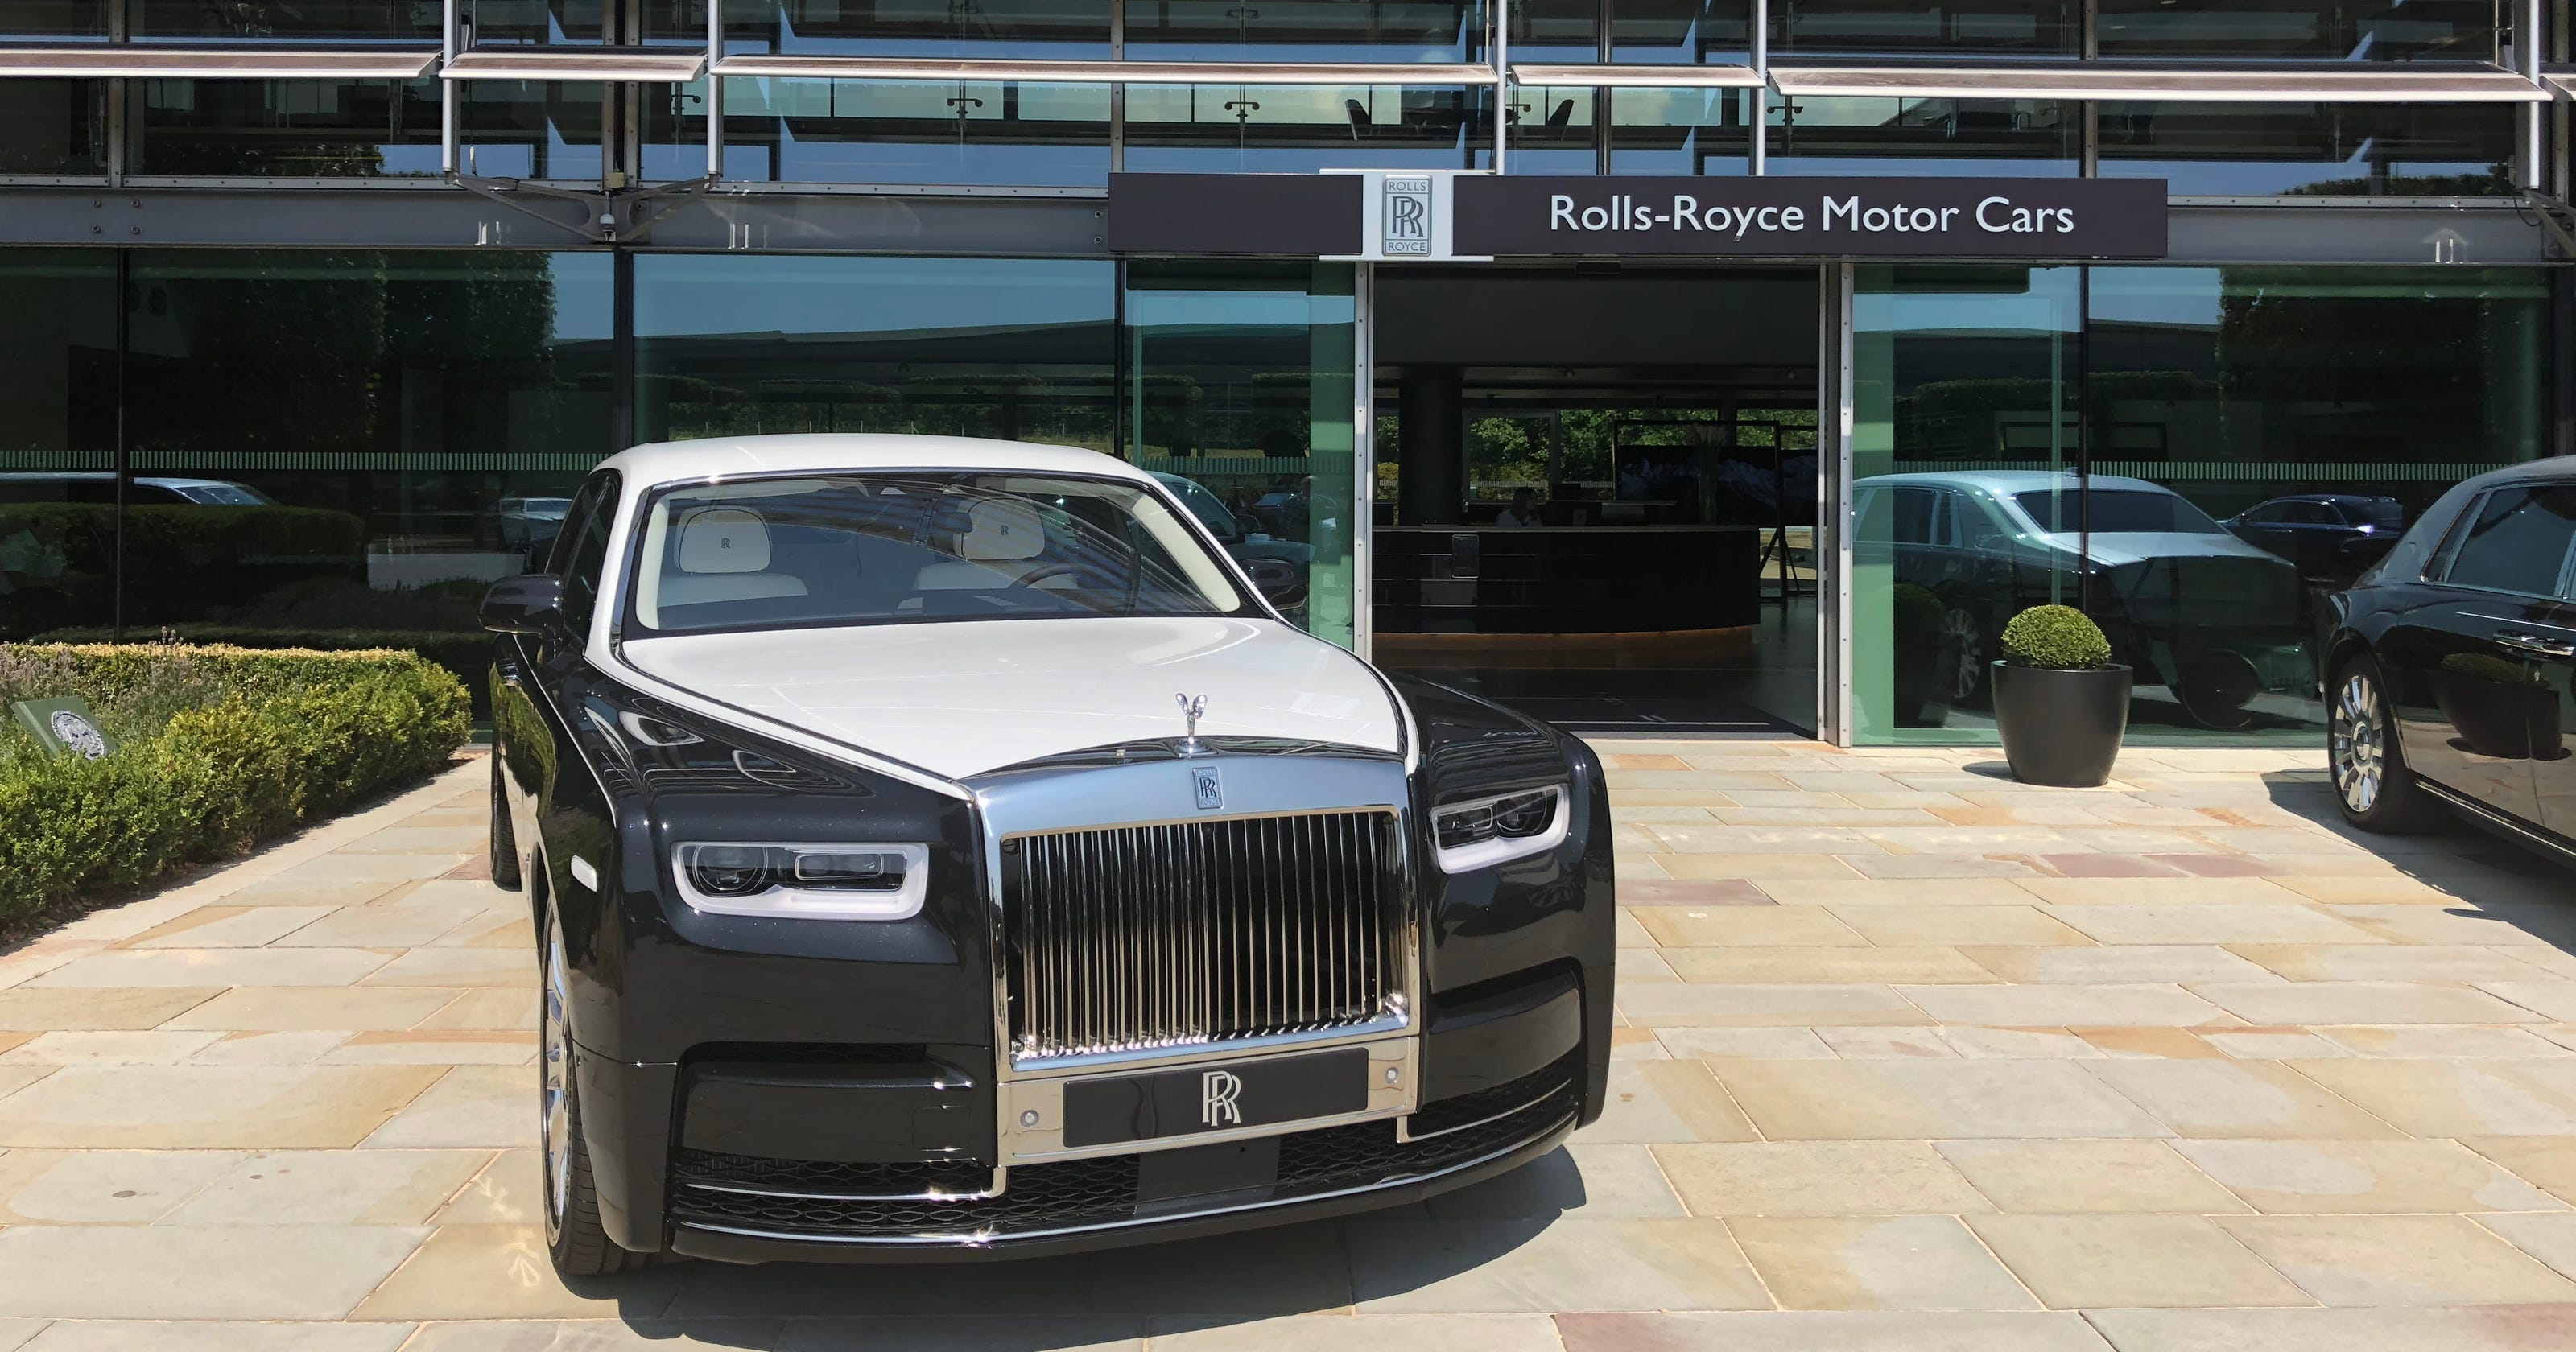 Rolls Royce Welcome To The Home Of The Most Luxurious